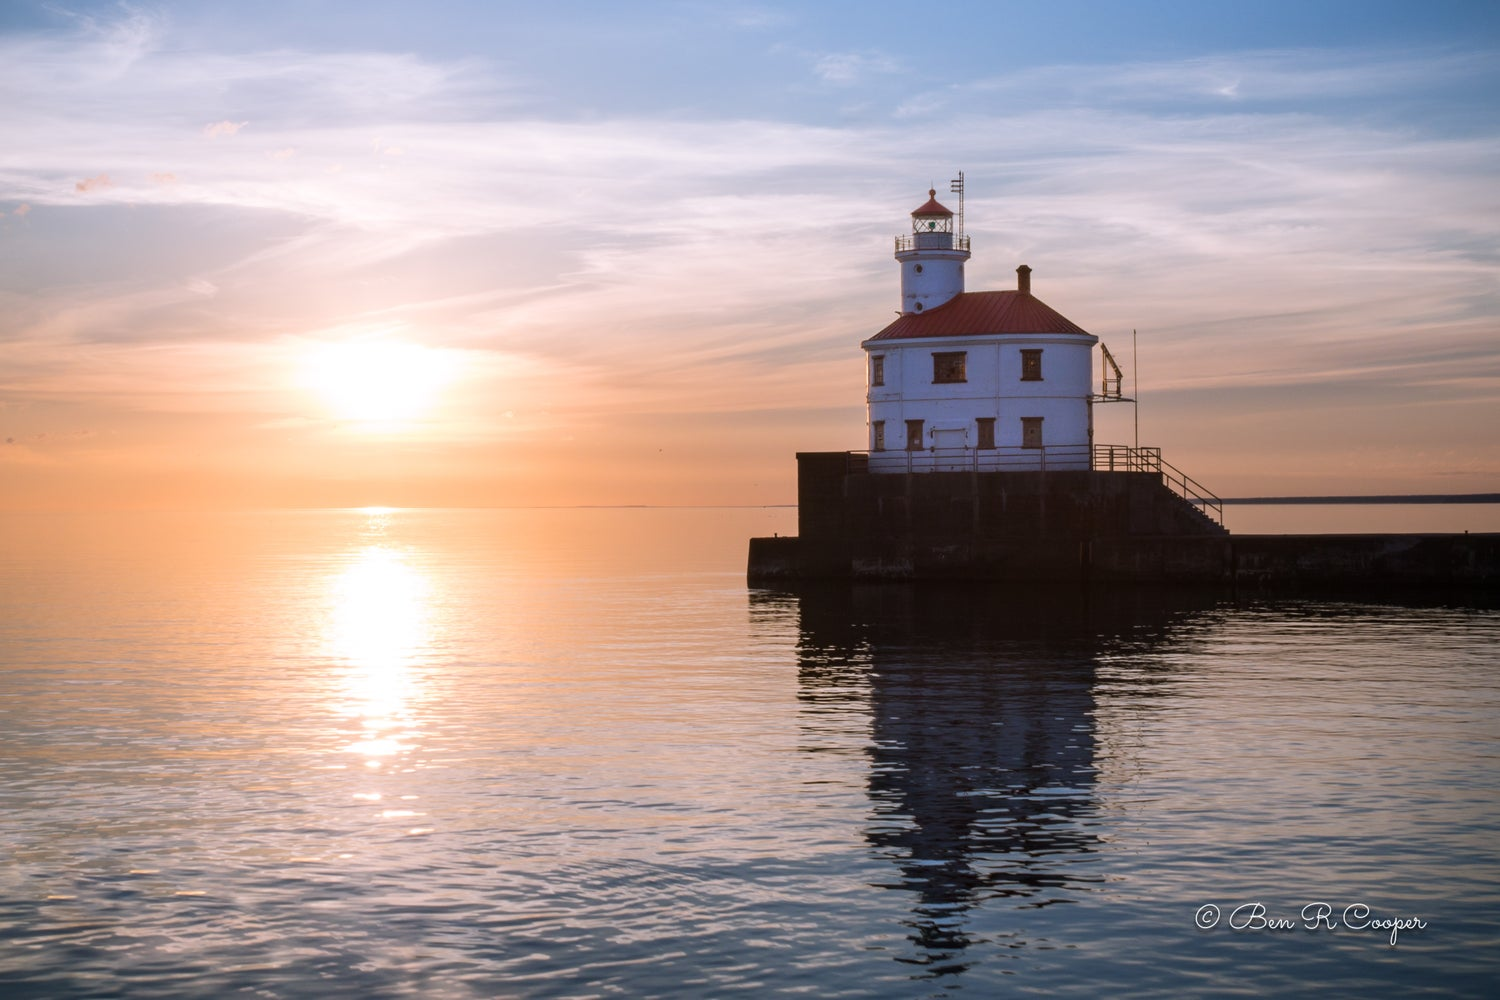 Sunrise at Superior Entry Lighthouse